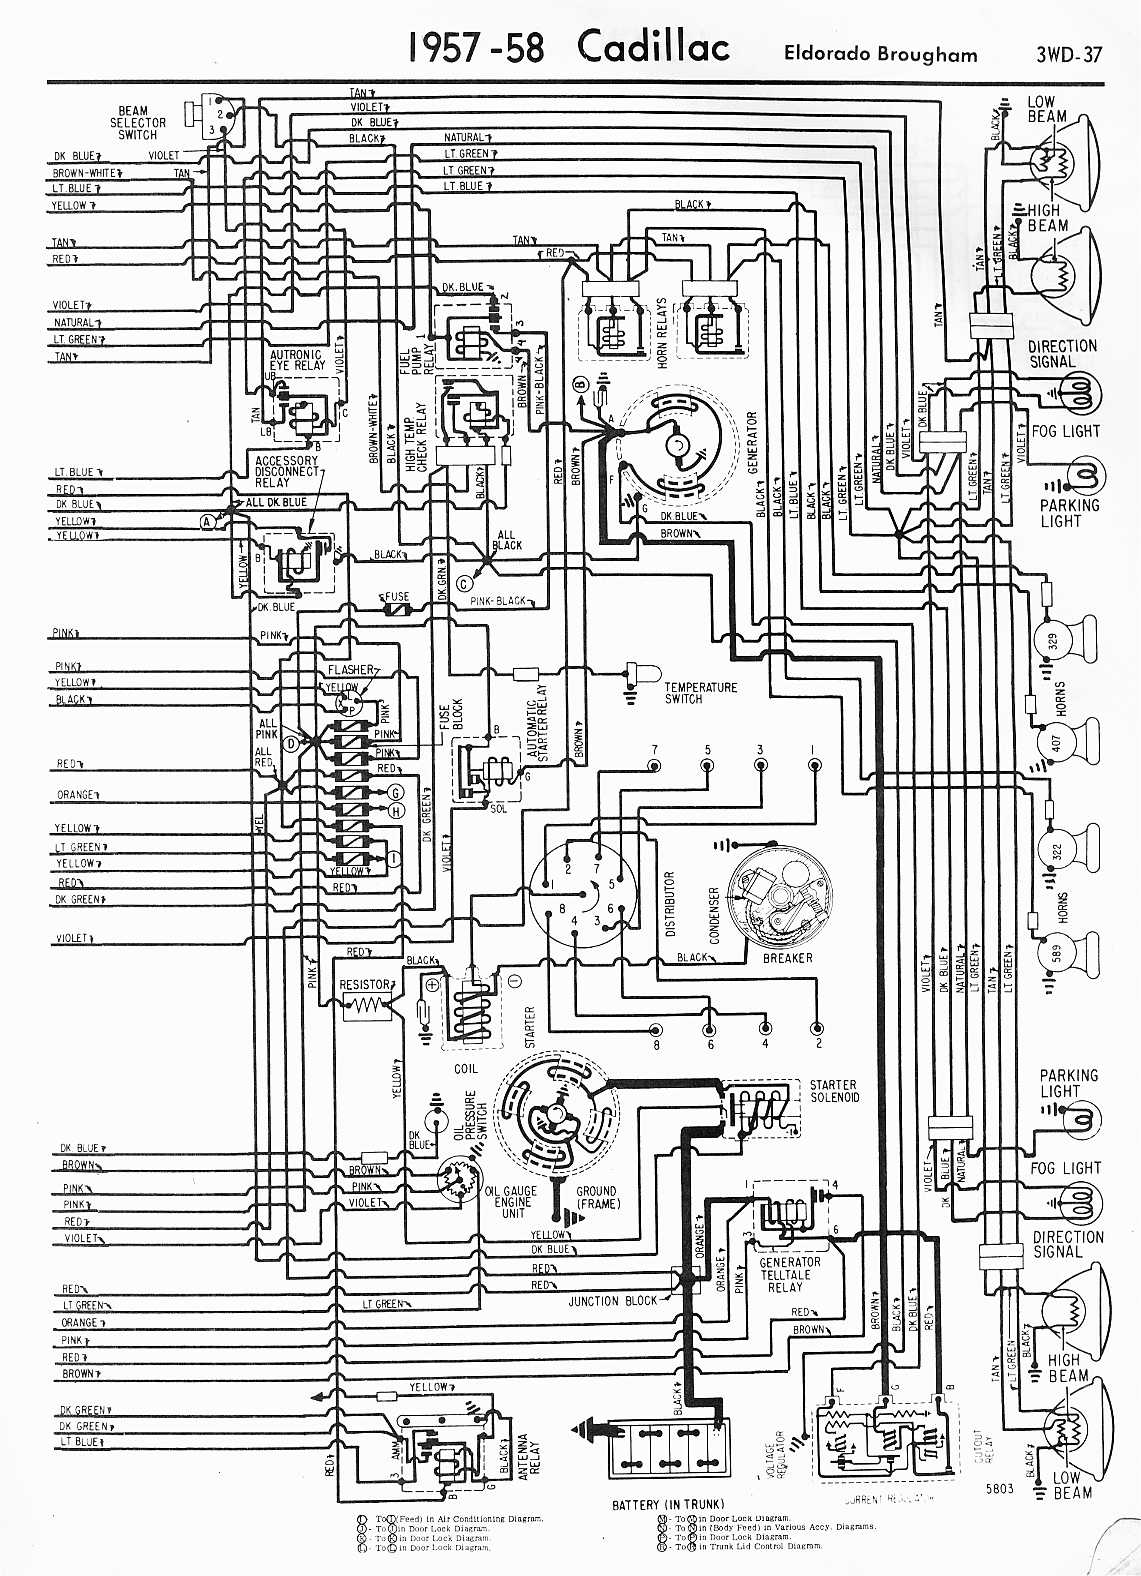 1954 Willys Jeep Wiring Diagram Schematic Library Cadillac Diagrams 1957 1965 Dodge 1956